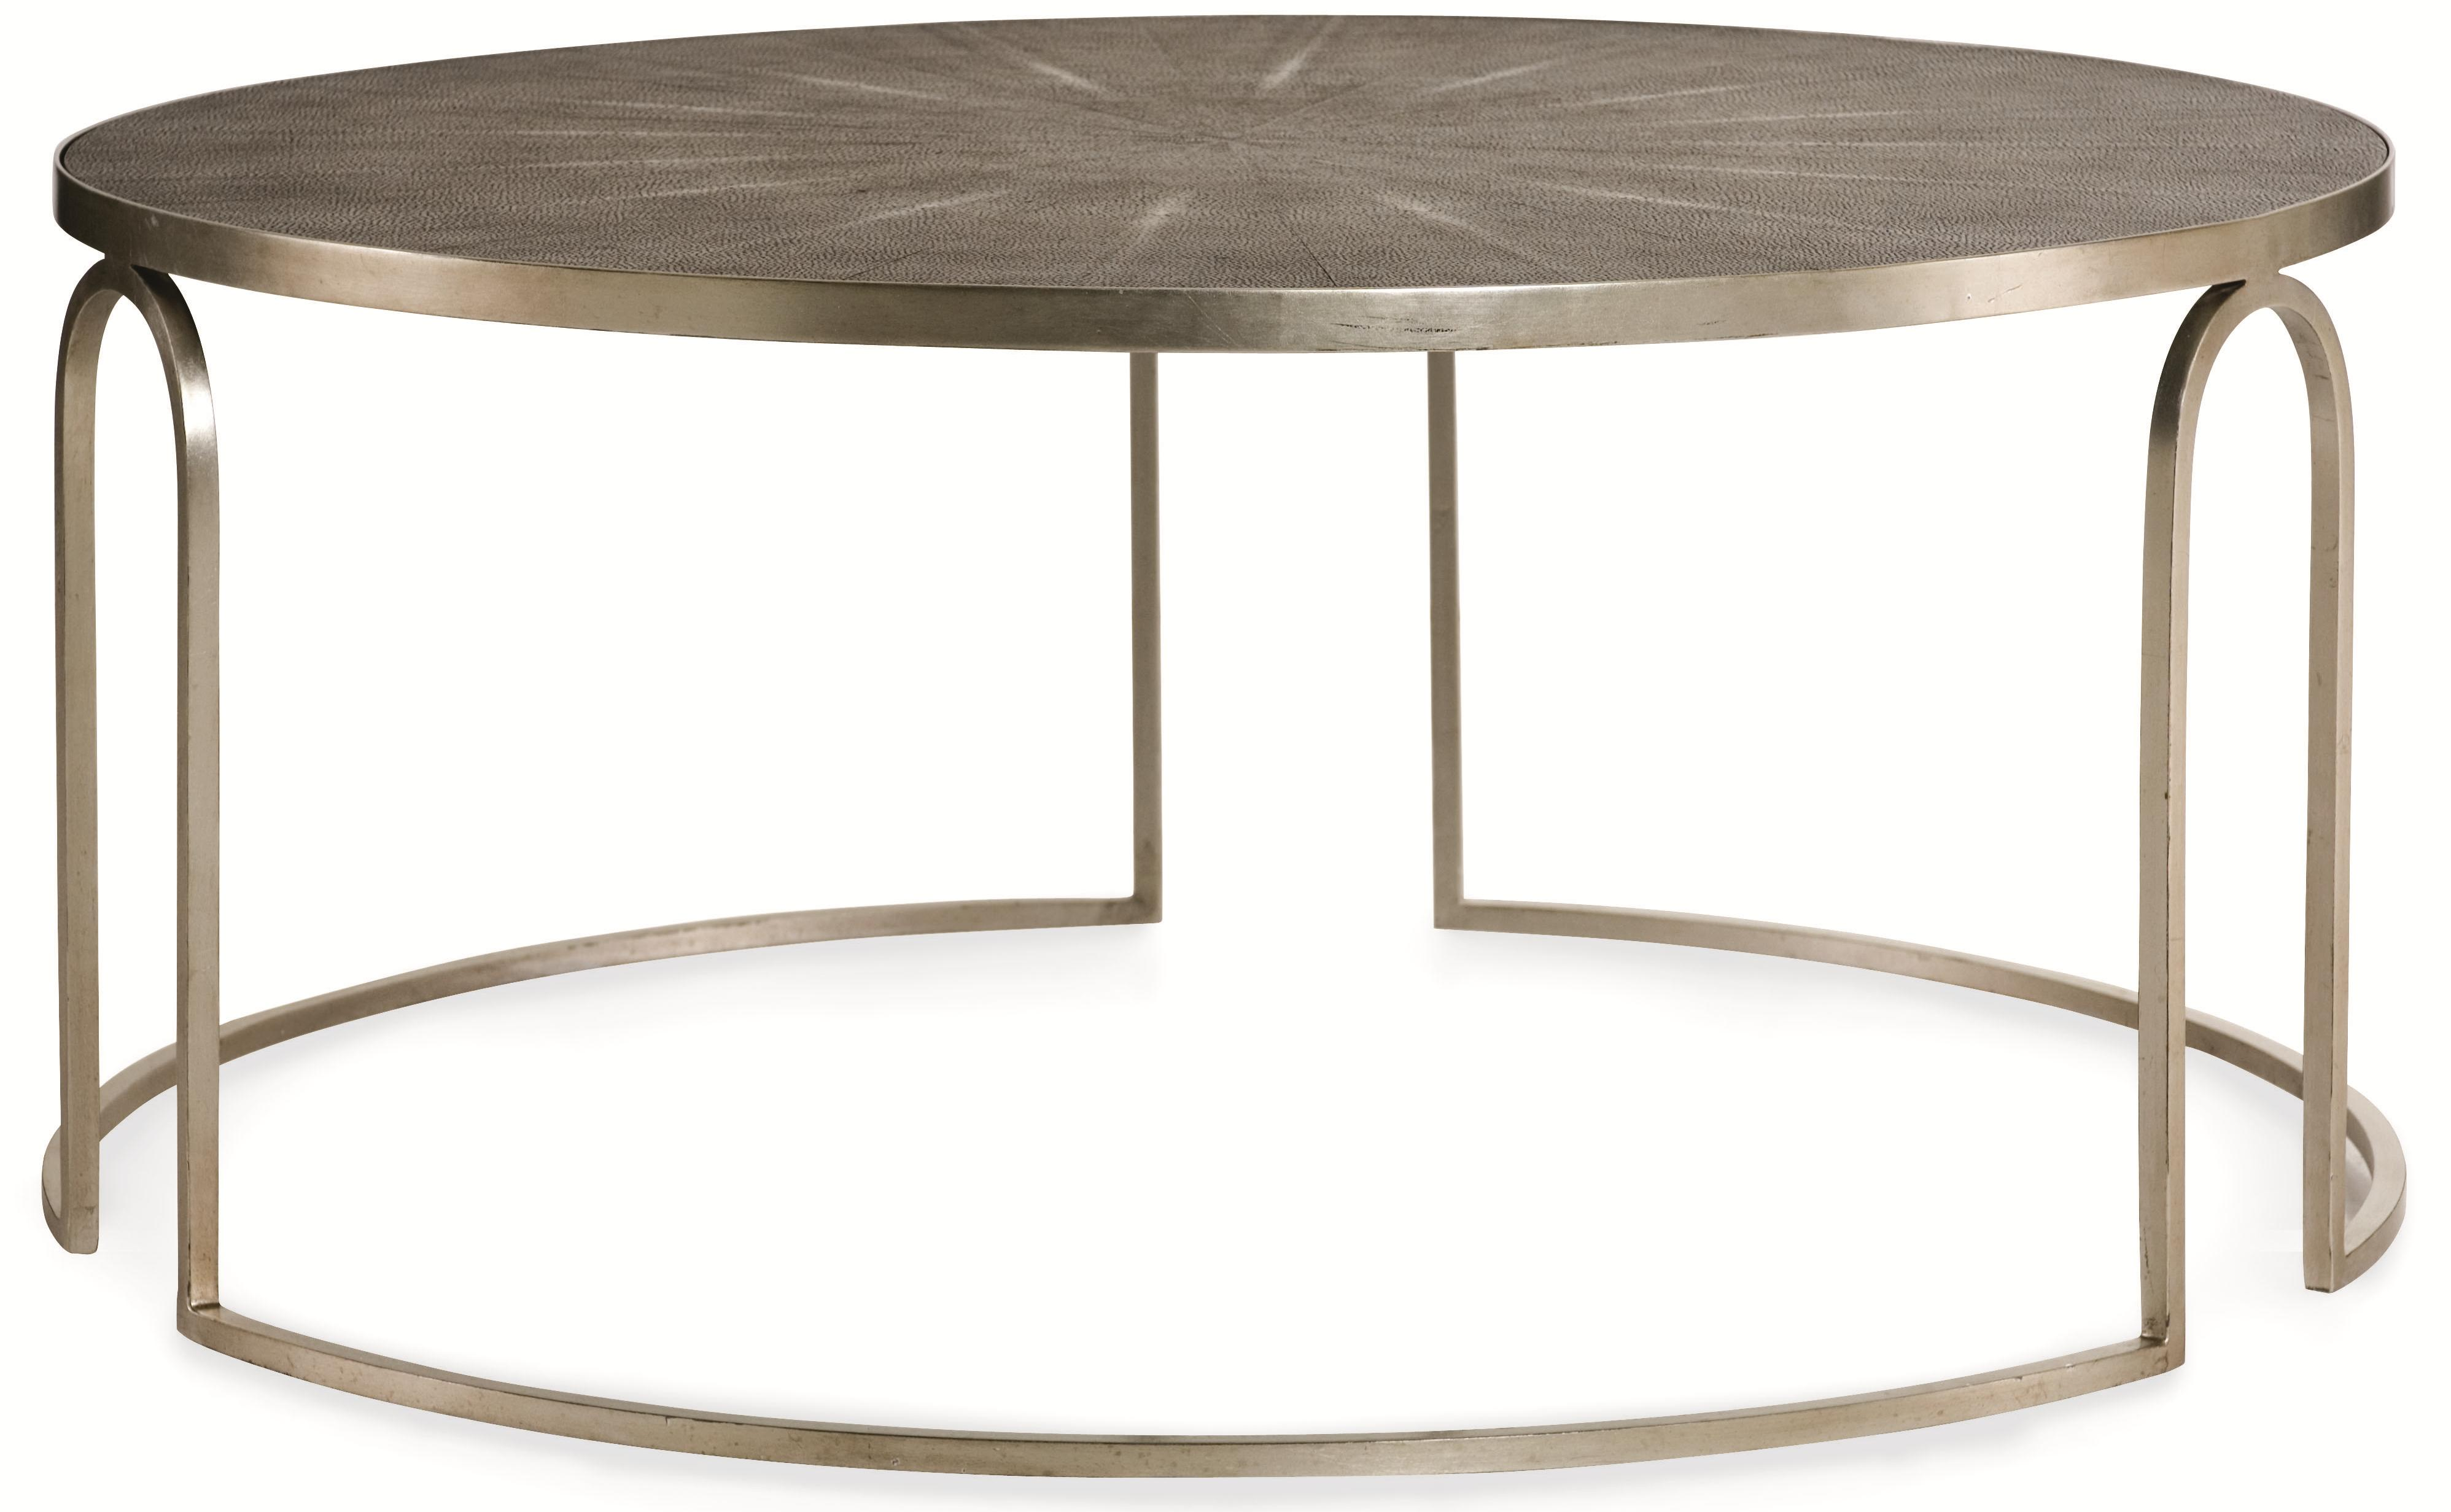 Archive Home and Monarch Thaxton Cocktail Table by Century at Alison Craig Home Furnishings